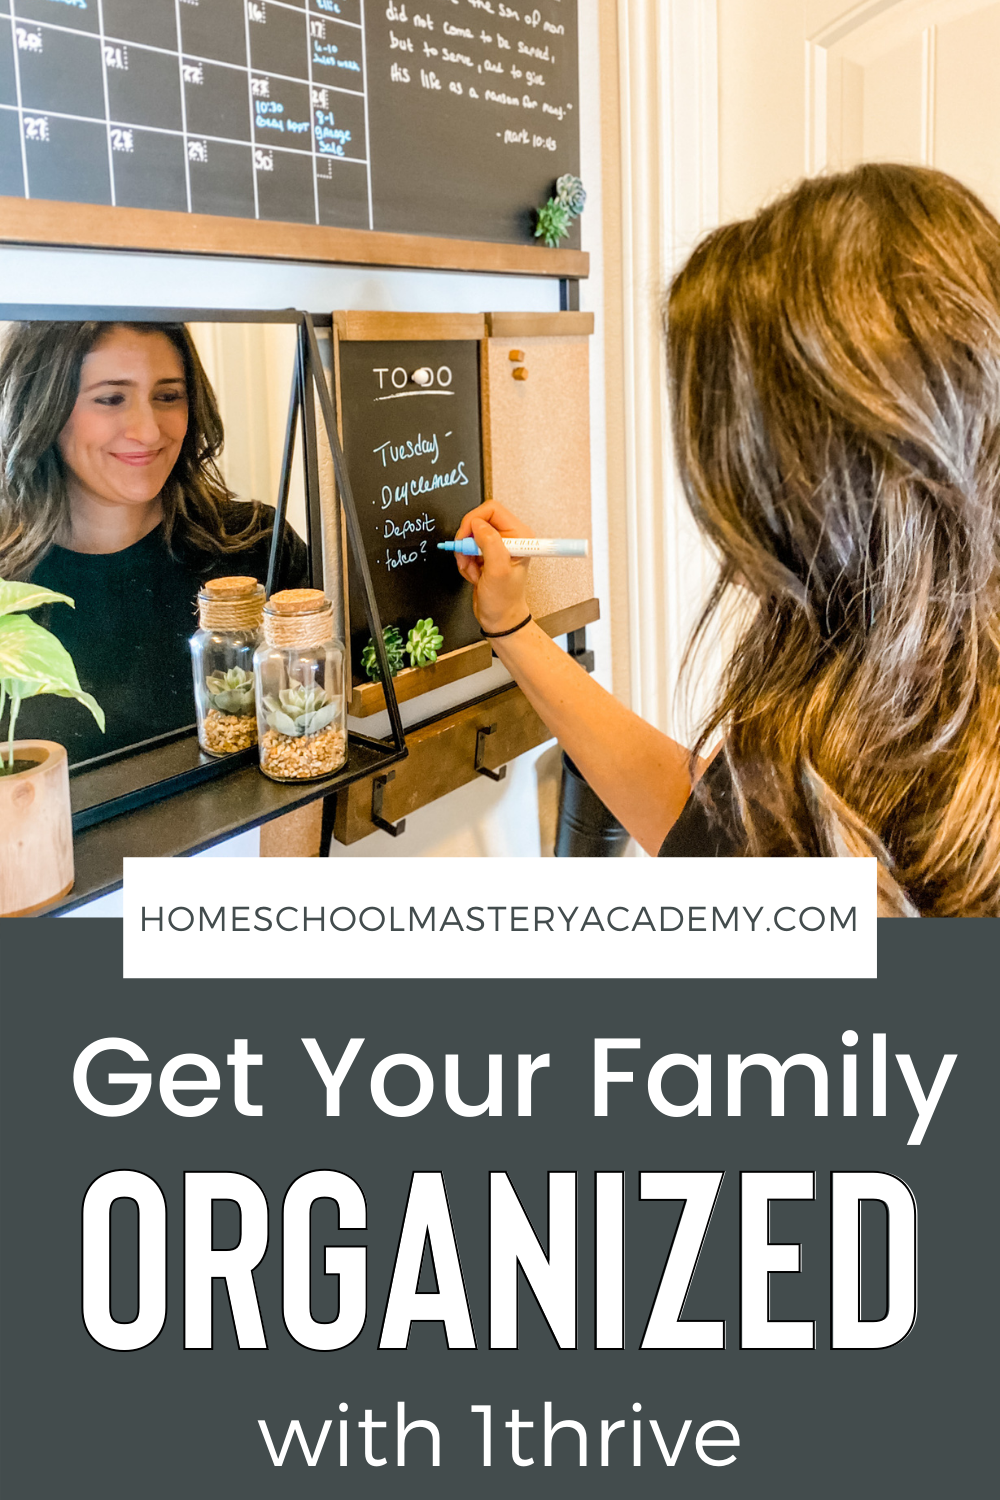 These 1Thrive command centers are just what you need to get your whole family organized! Take a look at how easy it is to create a family command center that looks so put together and requires little effort on your part. #organization #commandcenter #family #getorganized